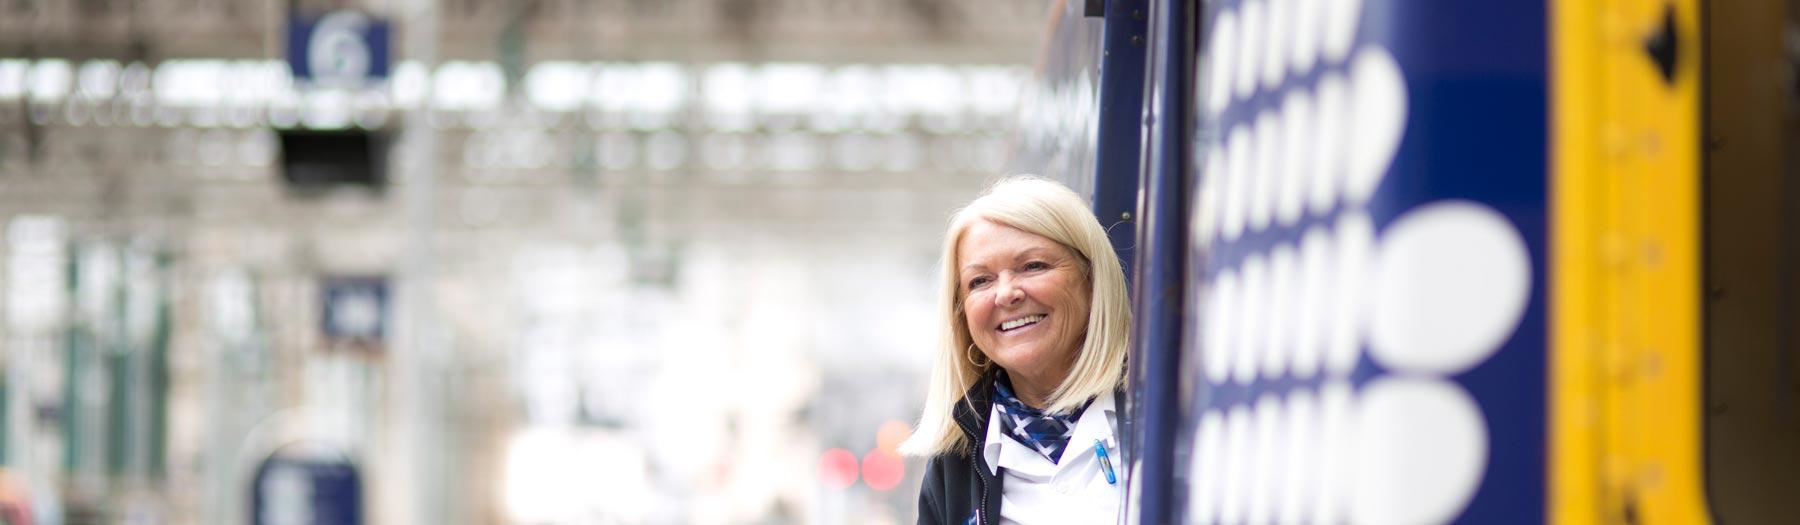 ScotRail smiling staff member